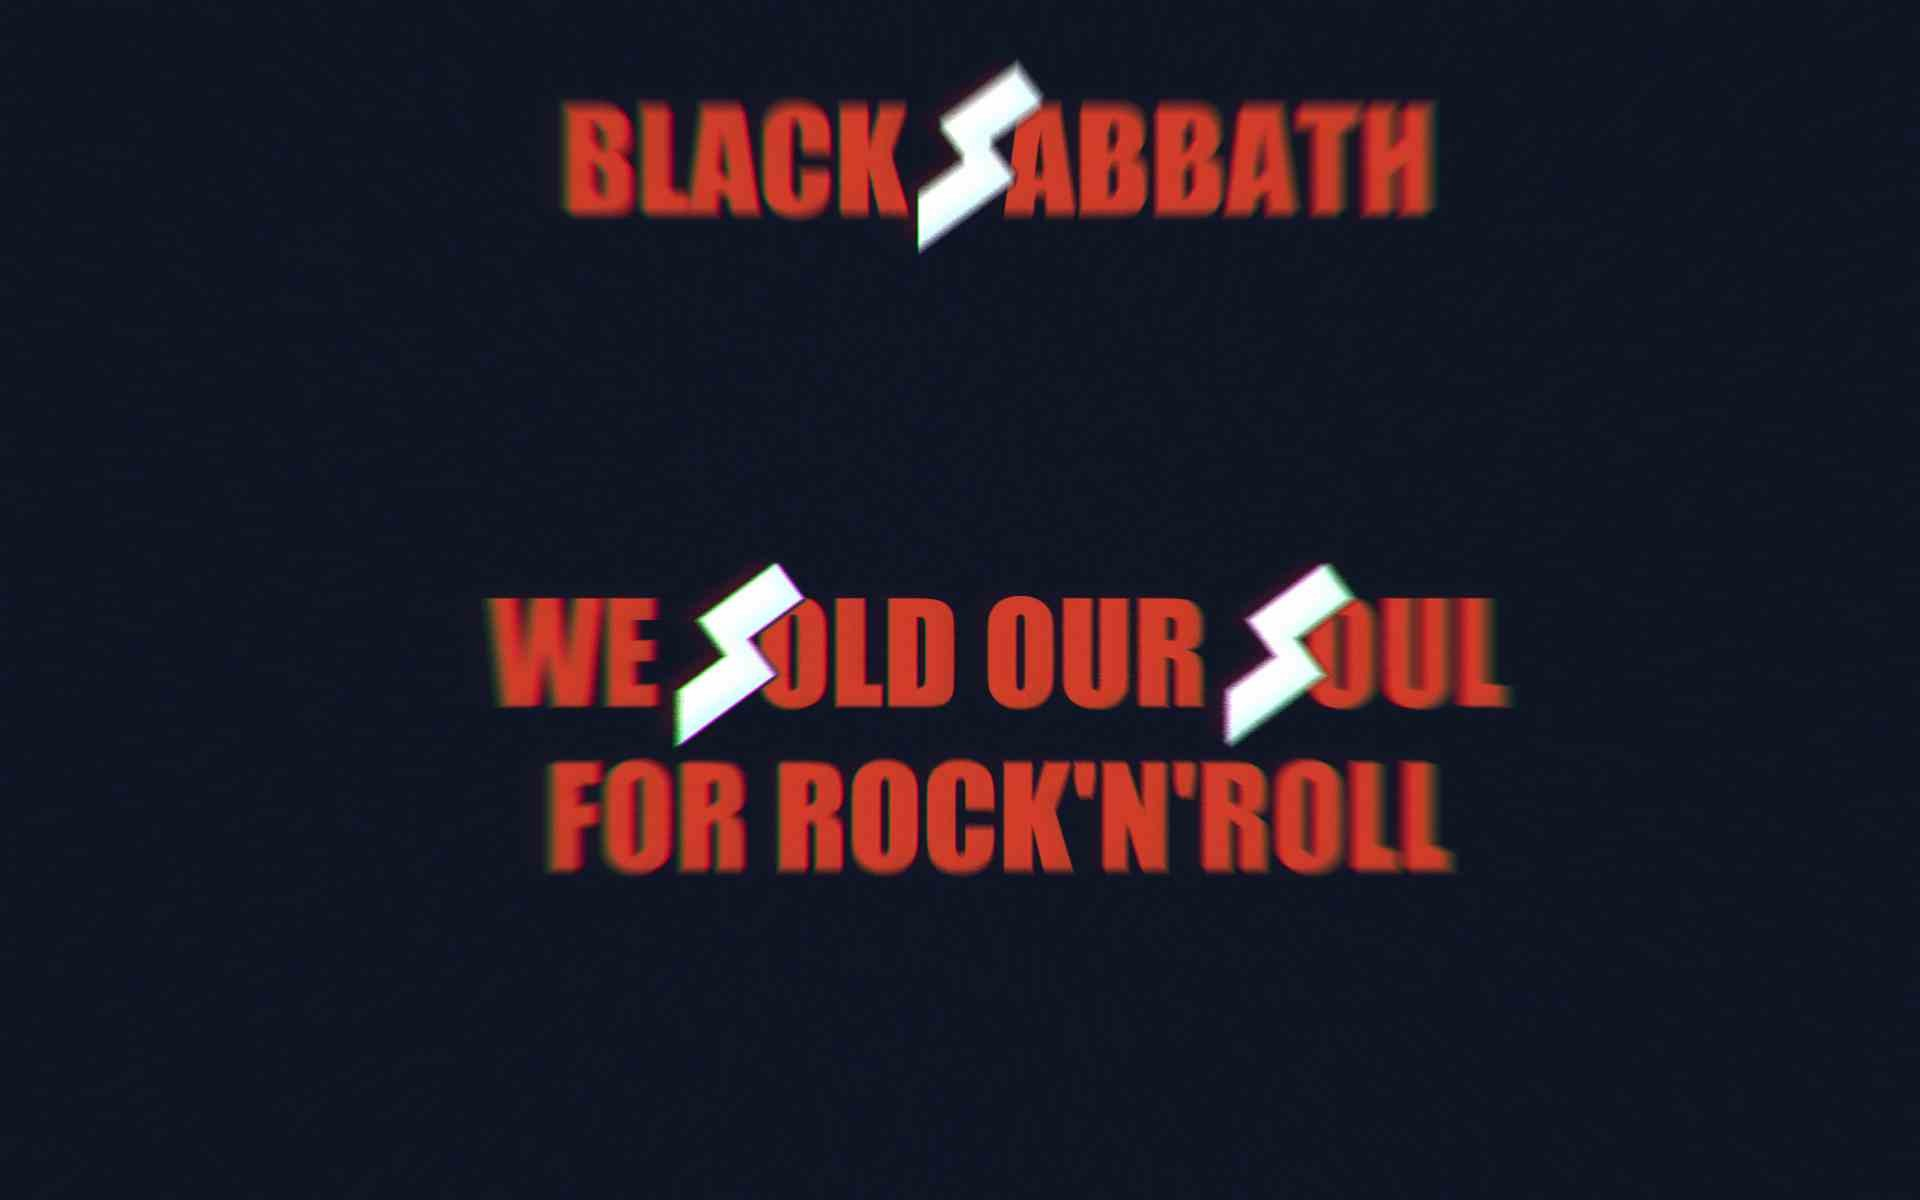 black sabbath 12 wallpaper – photo #8. 12 Amazing OffGrid Uses For A Simple  Steel Wool Pad